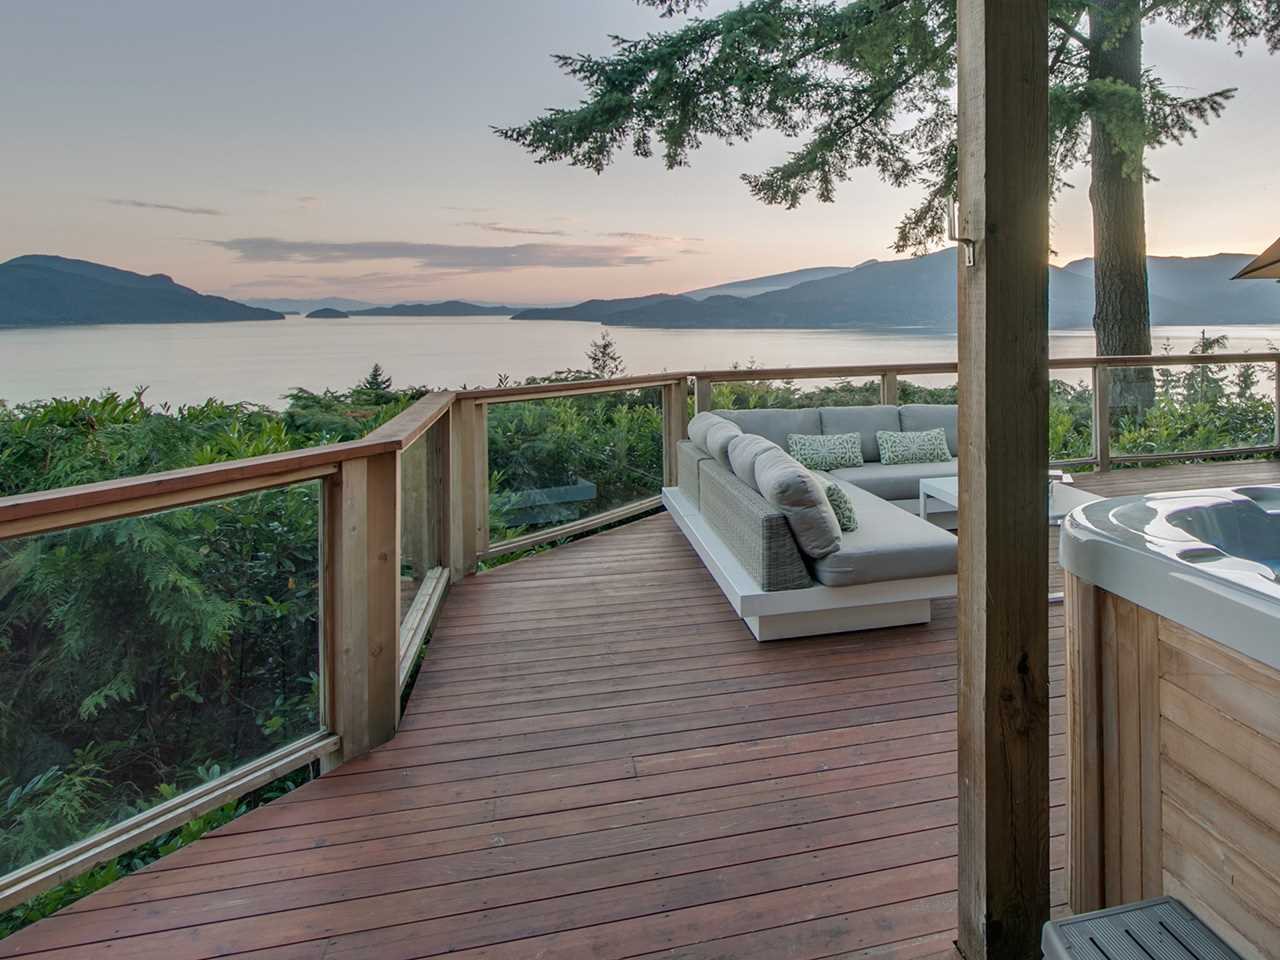 Main Photo: 360 BAYVIEW Road: Lions Bay House for sale (West Vancouver)  : MLS(r) # R2185109